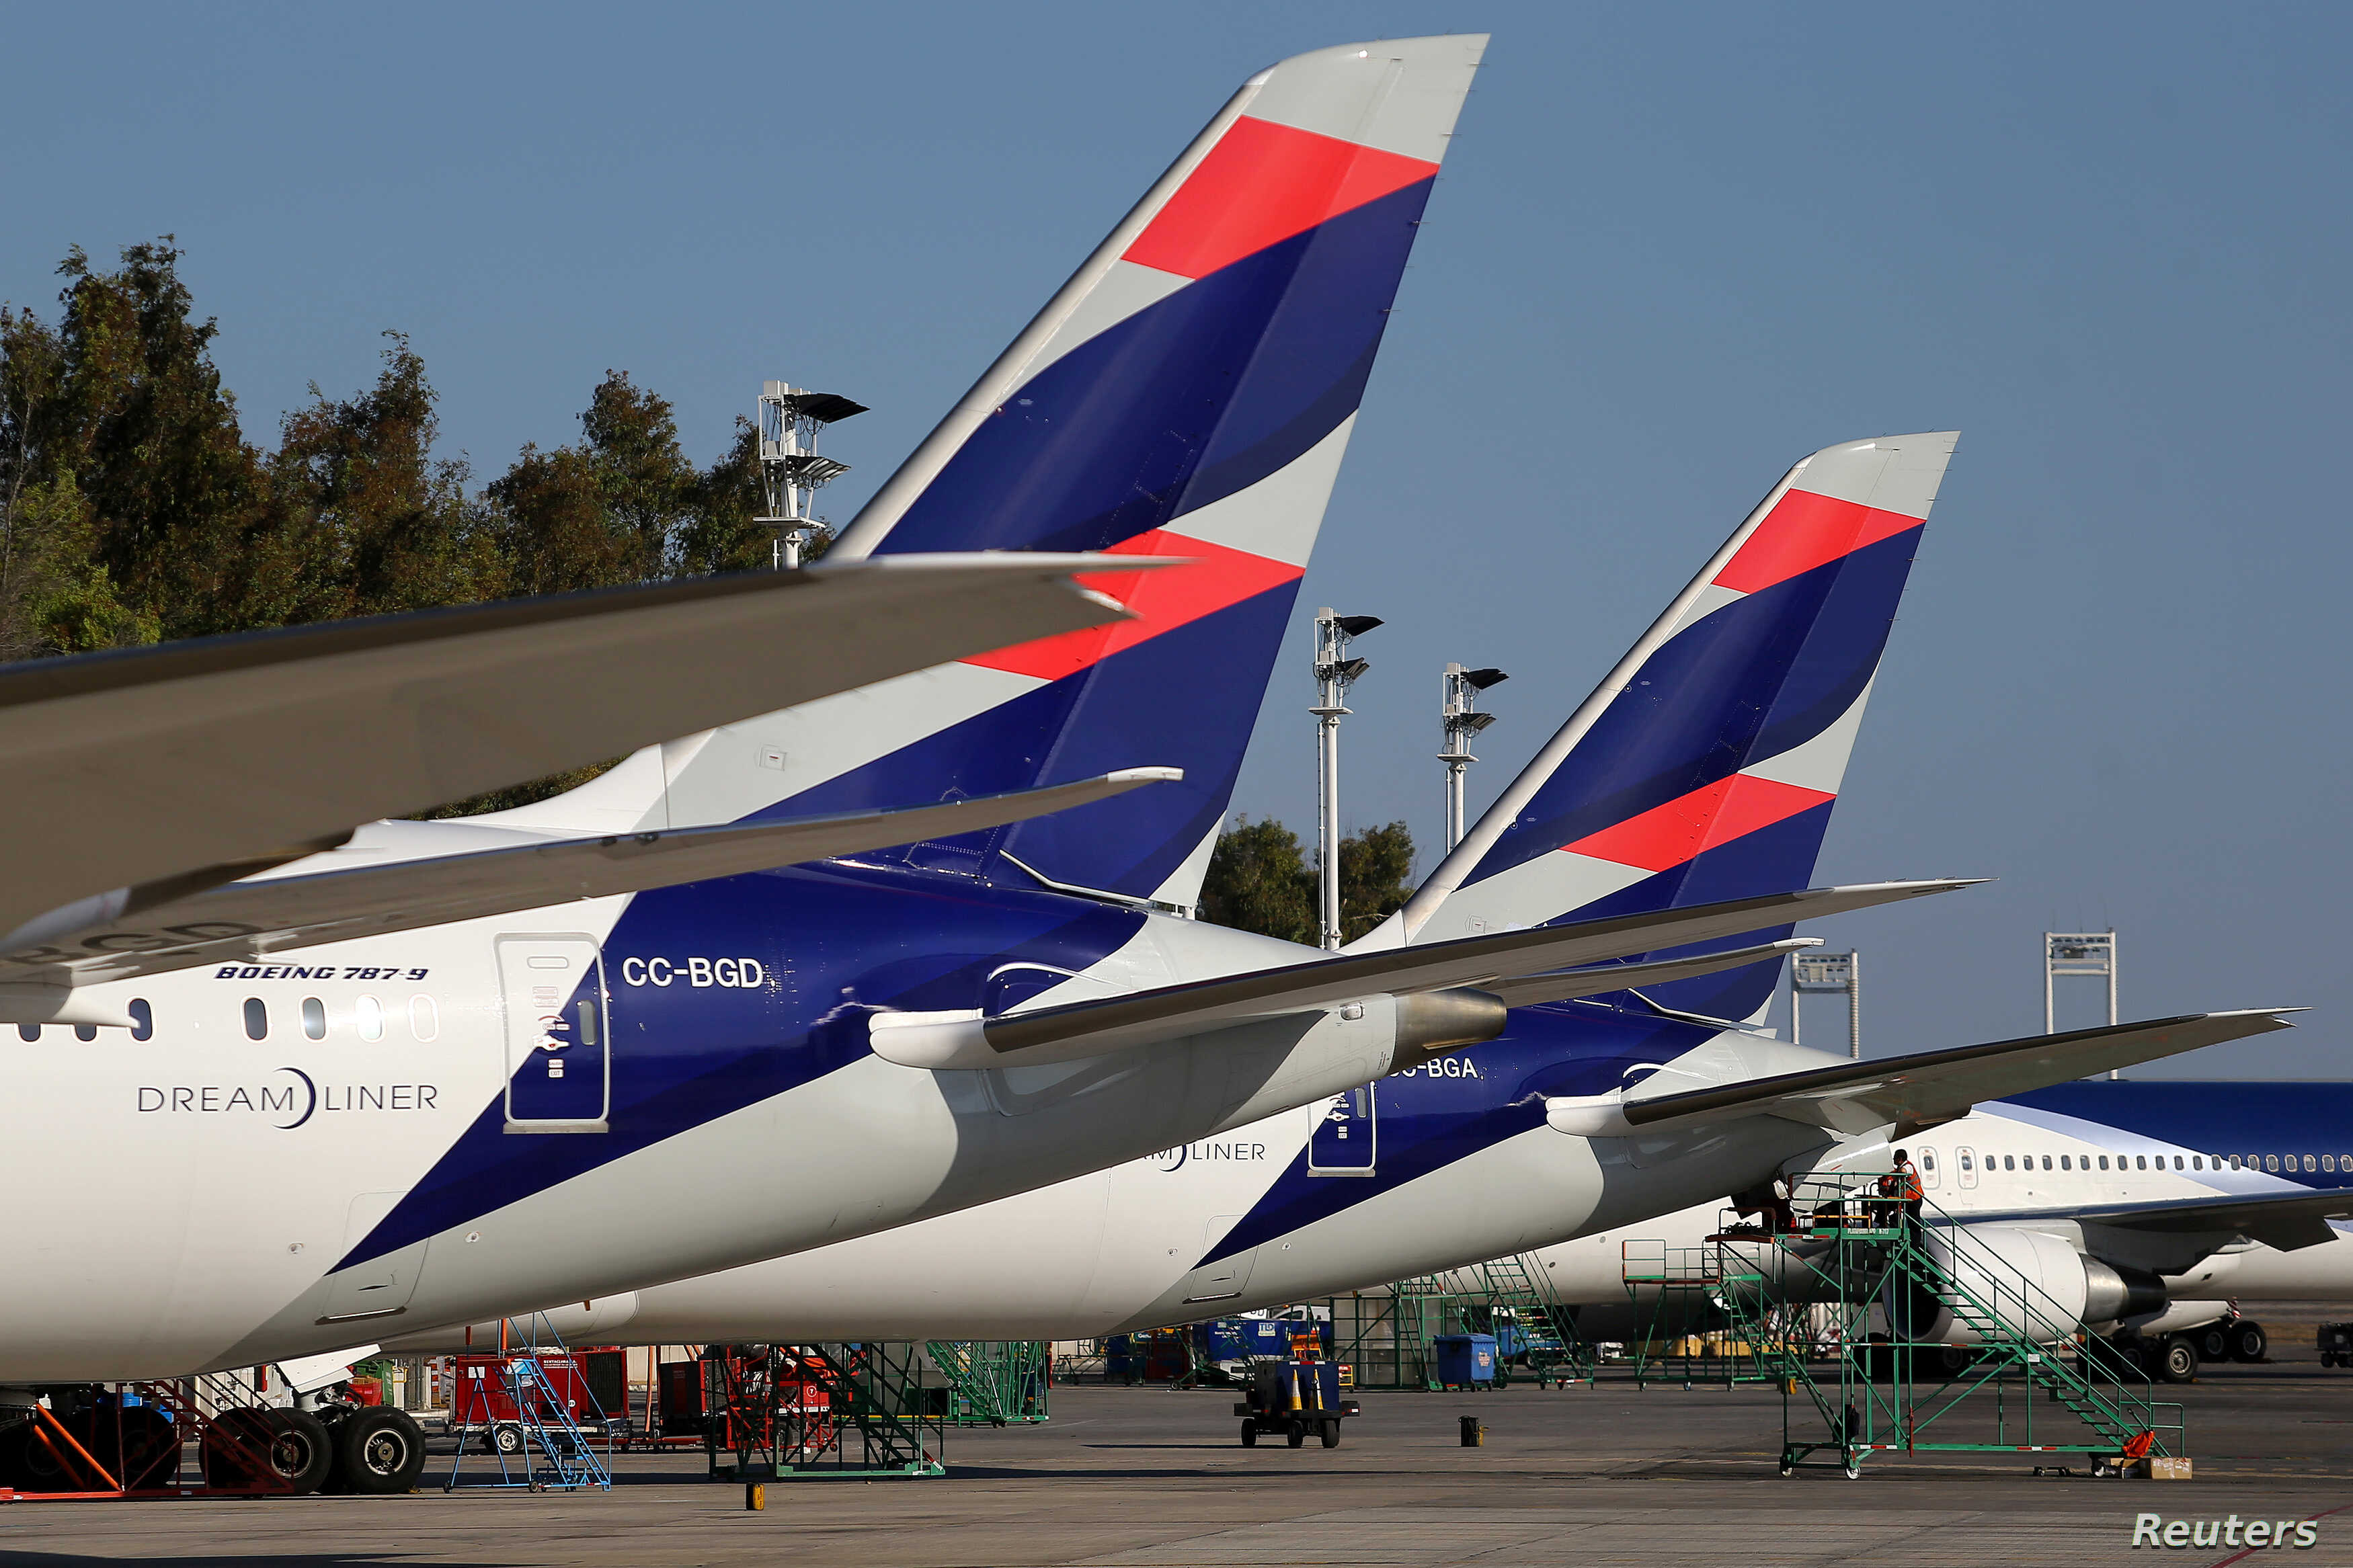 LATAM Airlines planes are seen at Santiago International Airport, Chile, March 30, 2017.